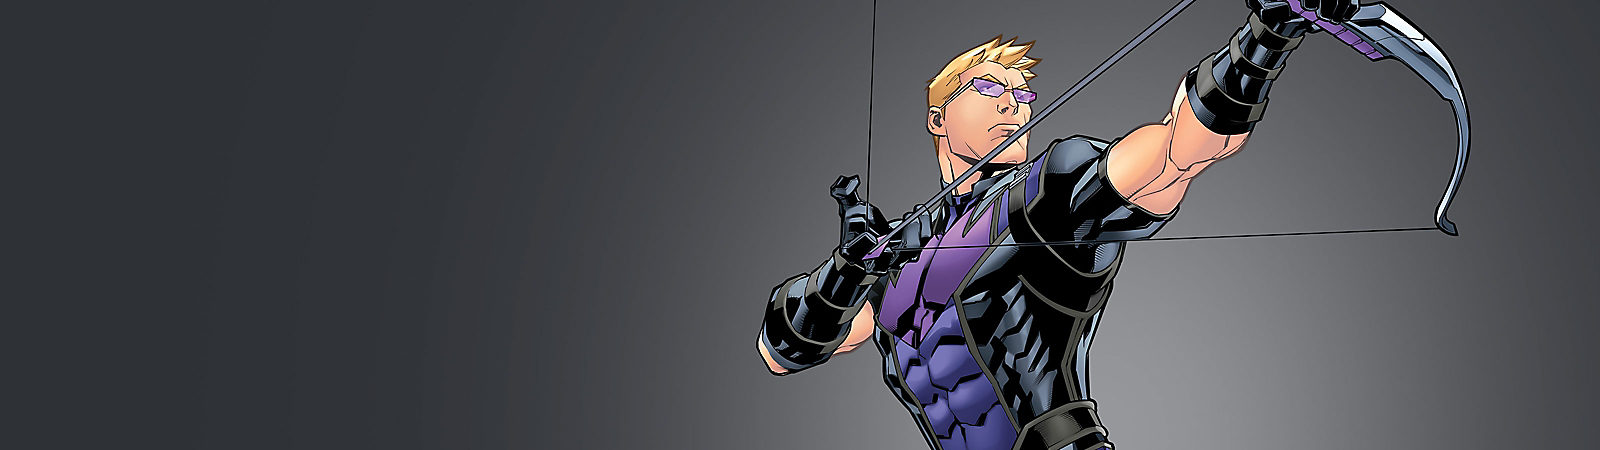 Background image of Hawkeye